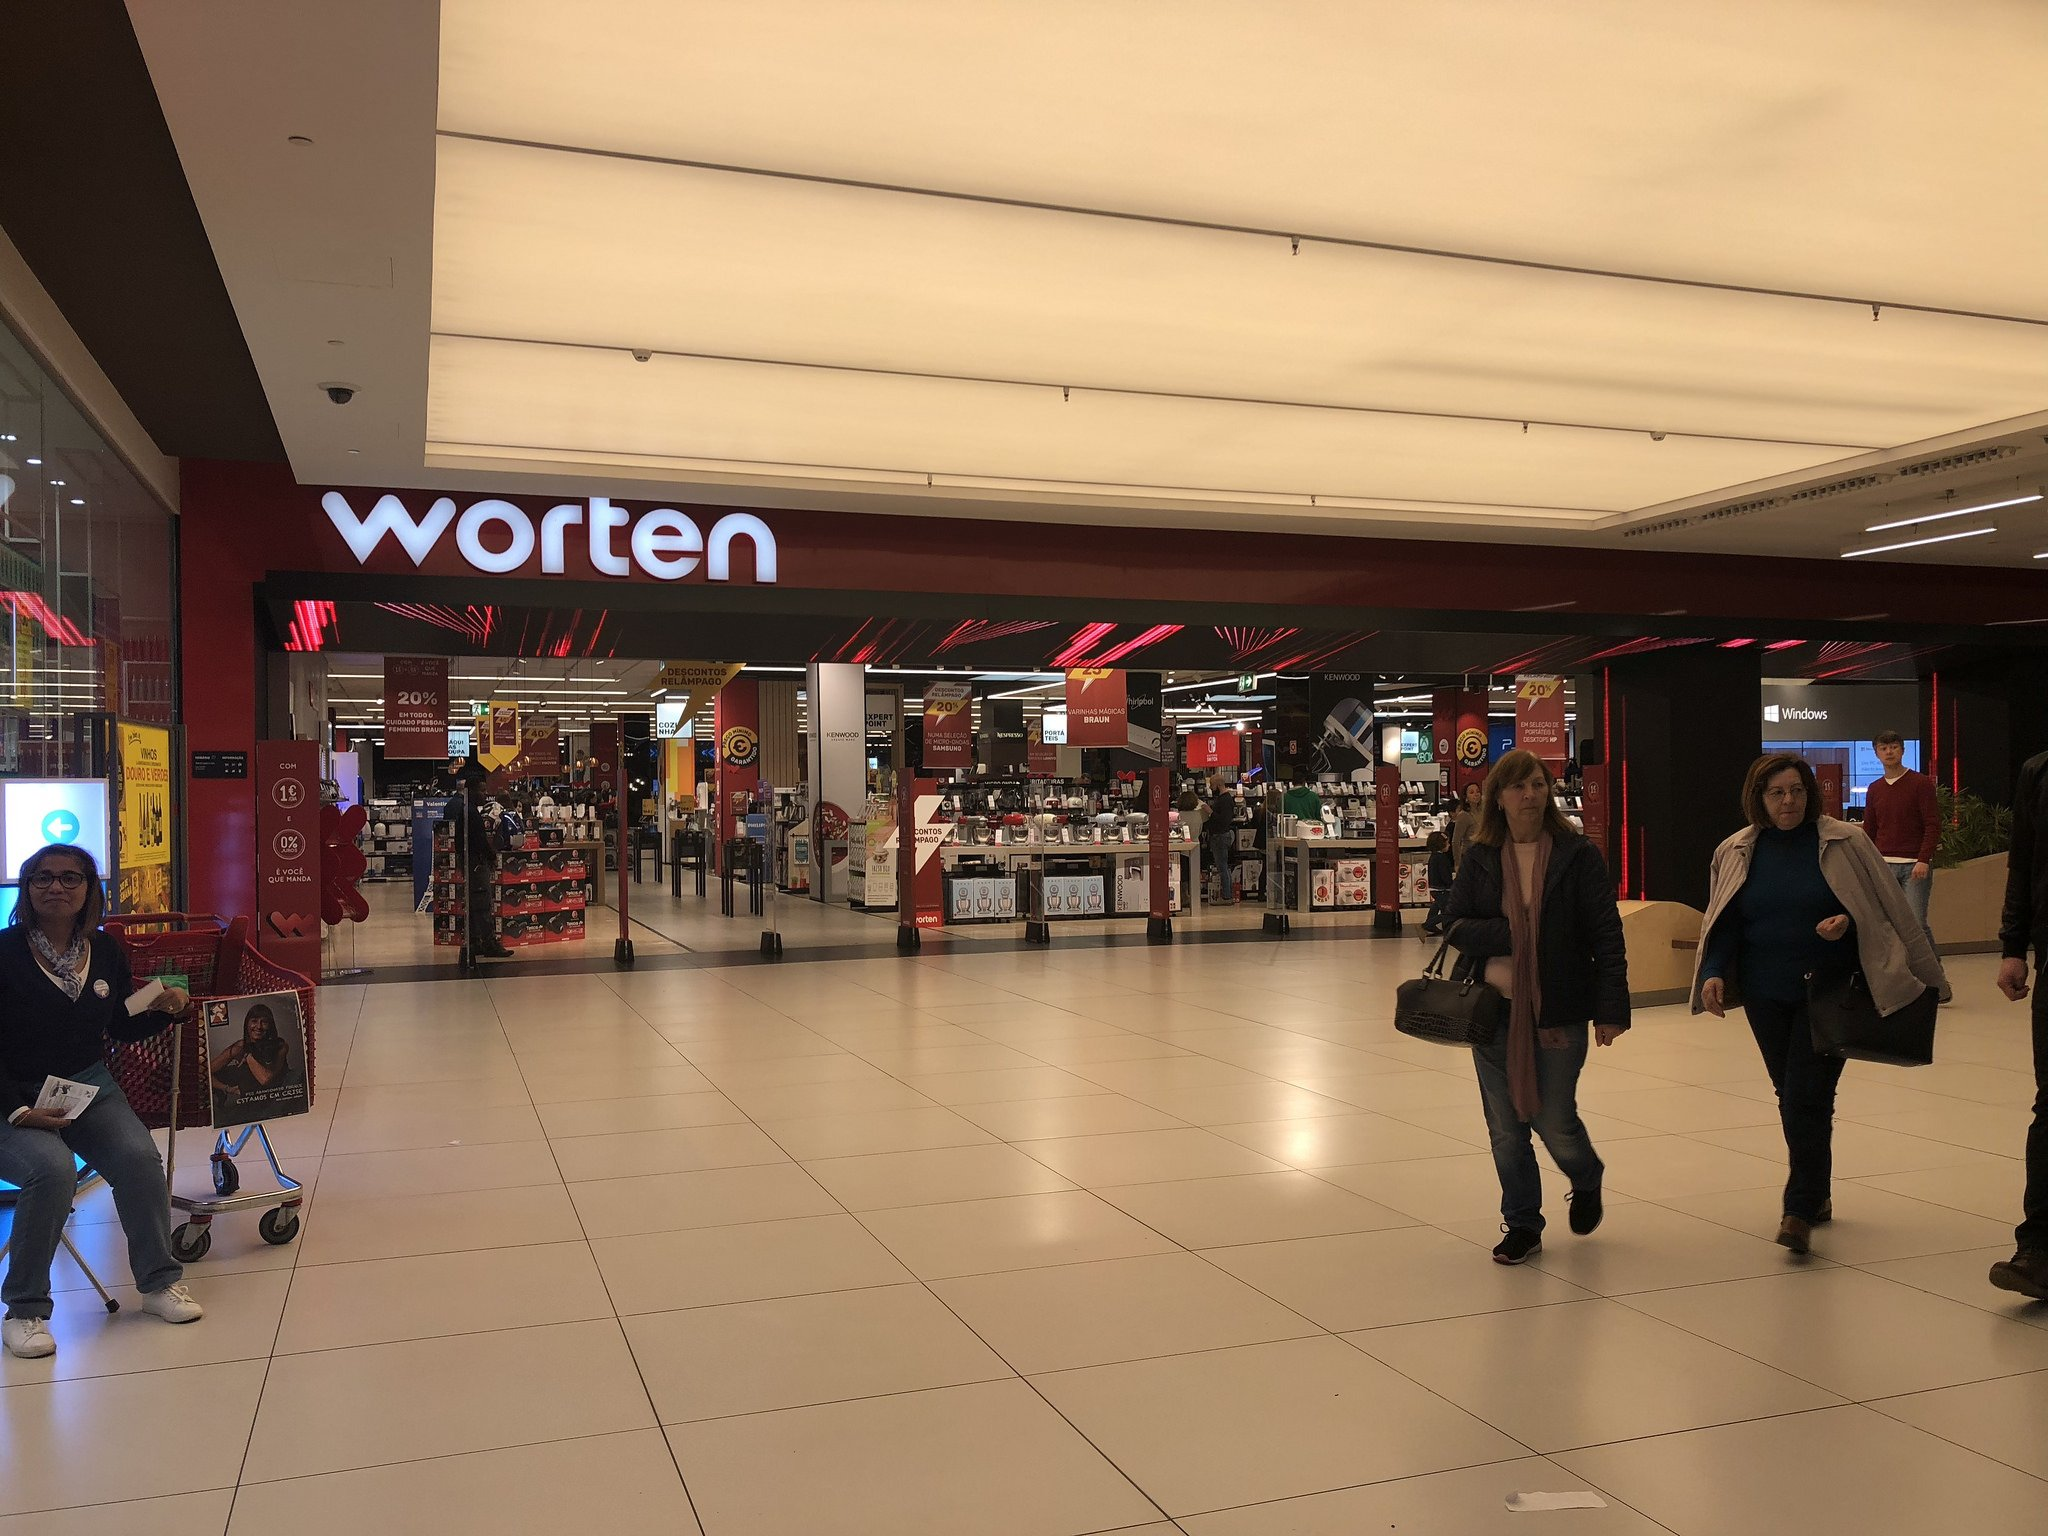 You can buy home appliances at Worten in Portugal